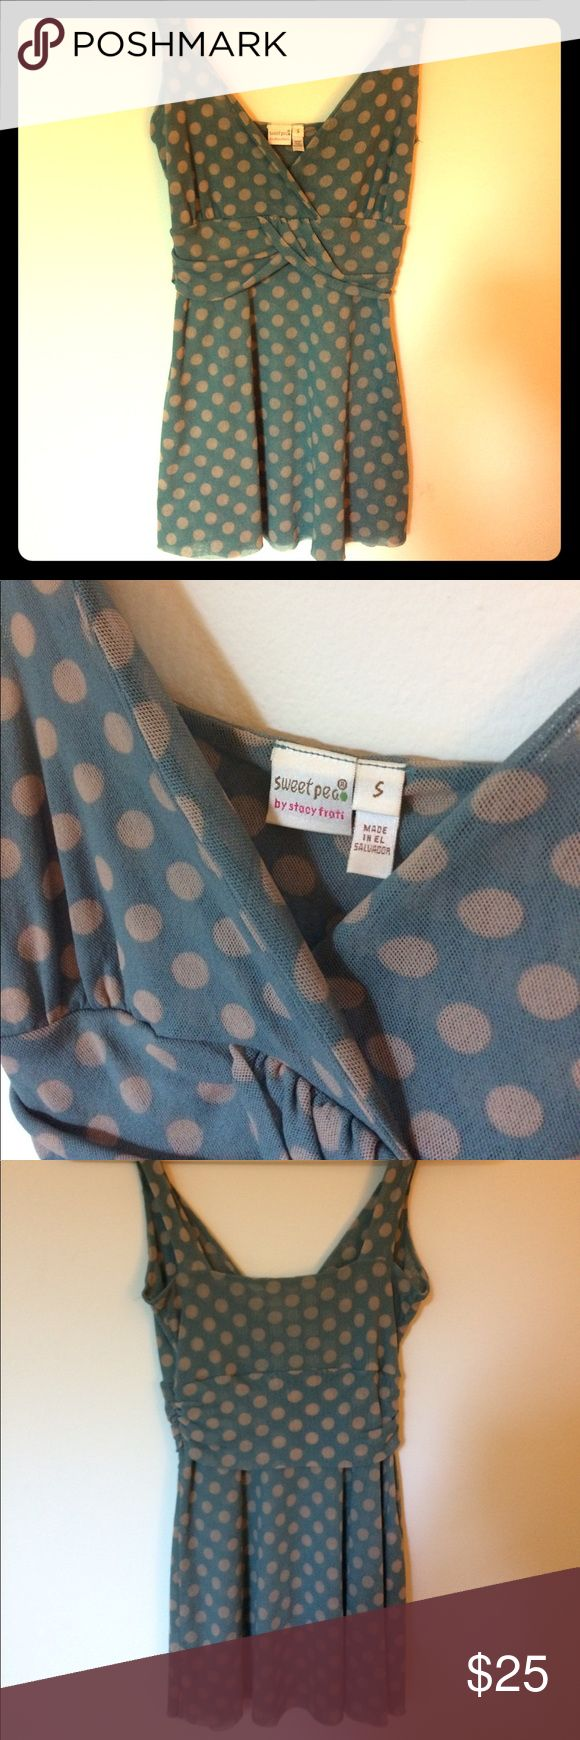 """Anthropologie by Sweat Pea Such a lovely print in teal w/ tan polka dots. Delicate mesh like material that is two layers thick and as u will see in photo 4 it is slightly see through in the right lighting...so either pair w/ a bralette or boldly go braless😊 pic 5 shows how it has an """"unfinished"""" style hemline. Great condition. Anthropologie Tops Tank Tops"""